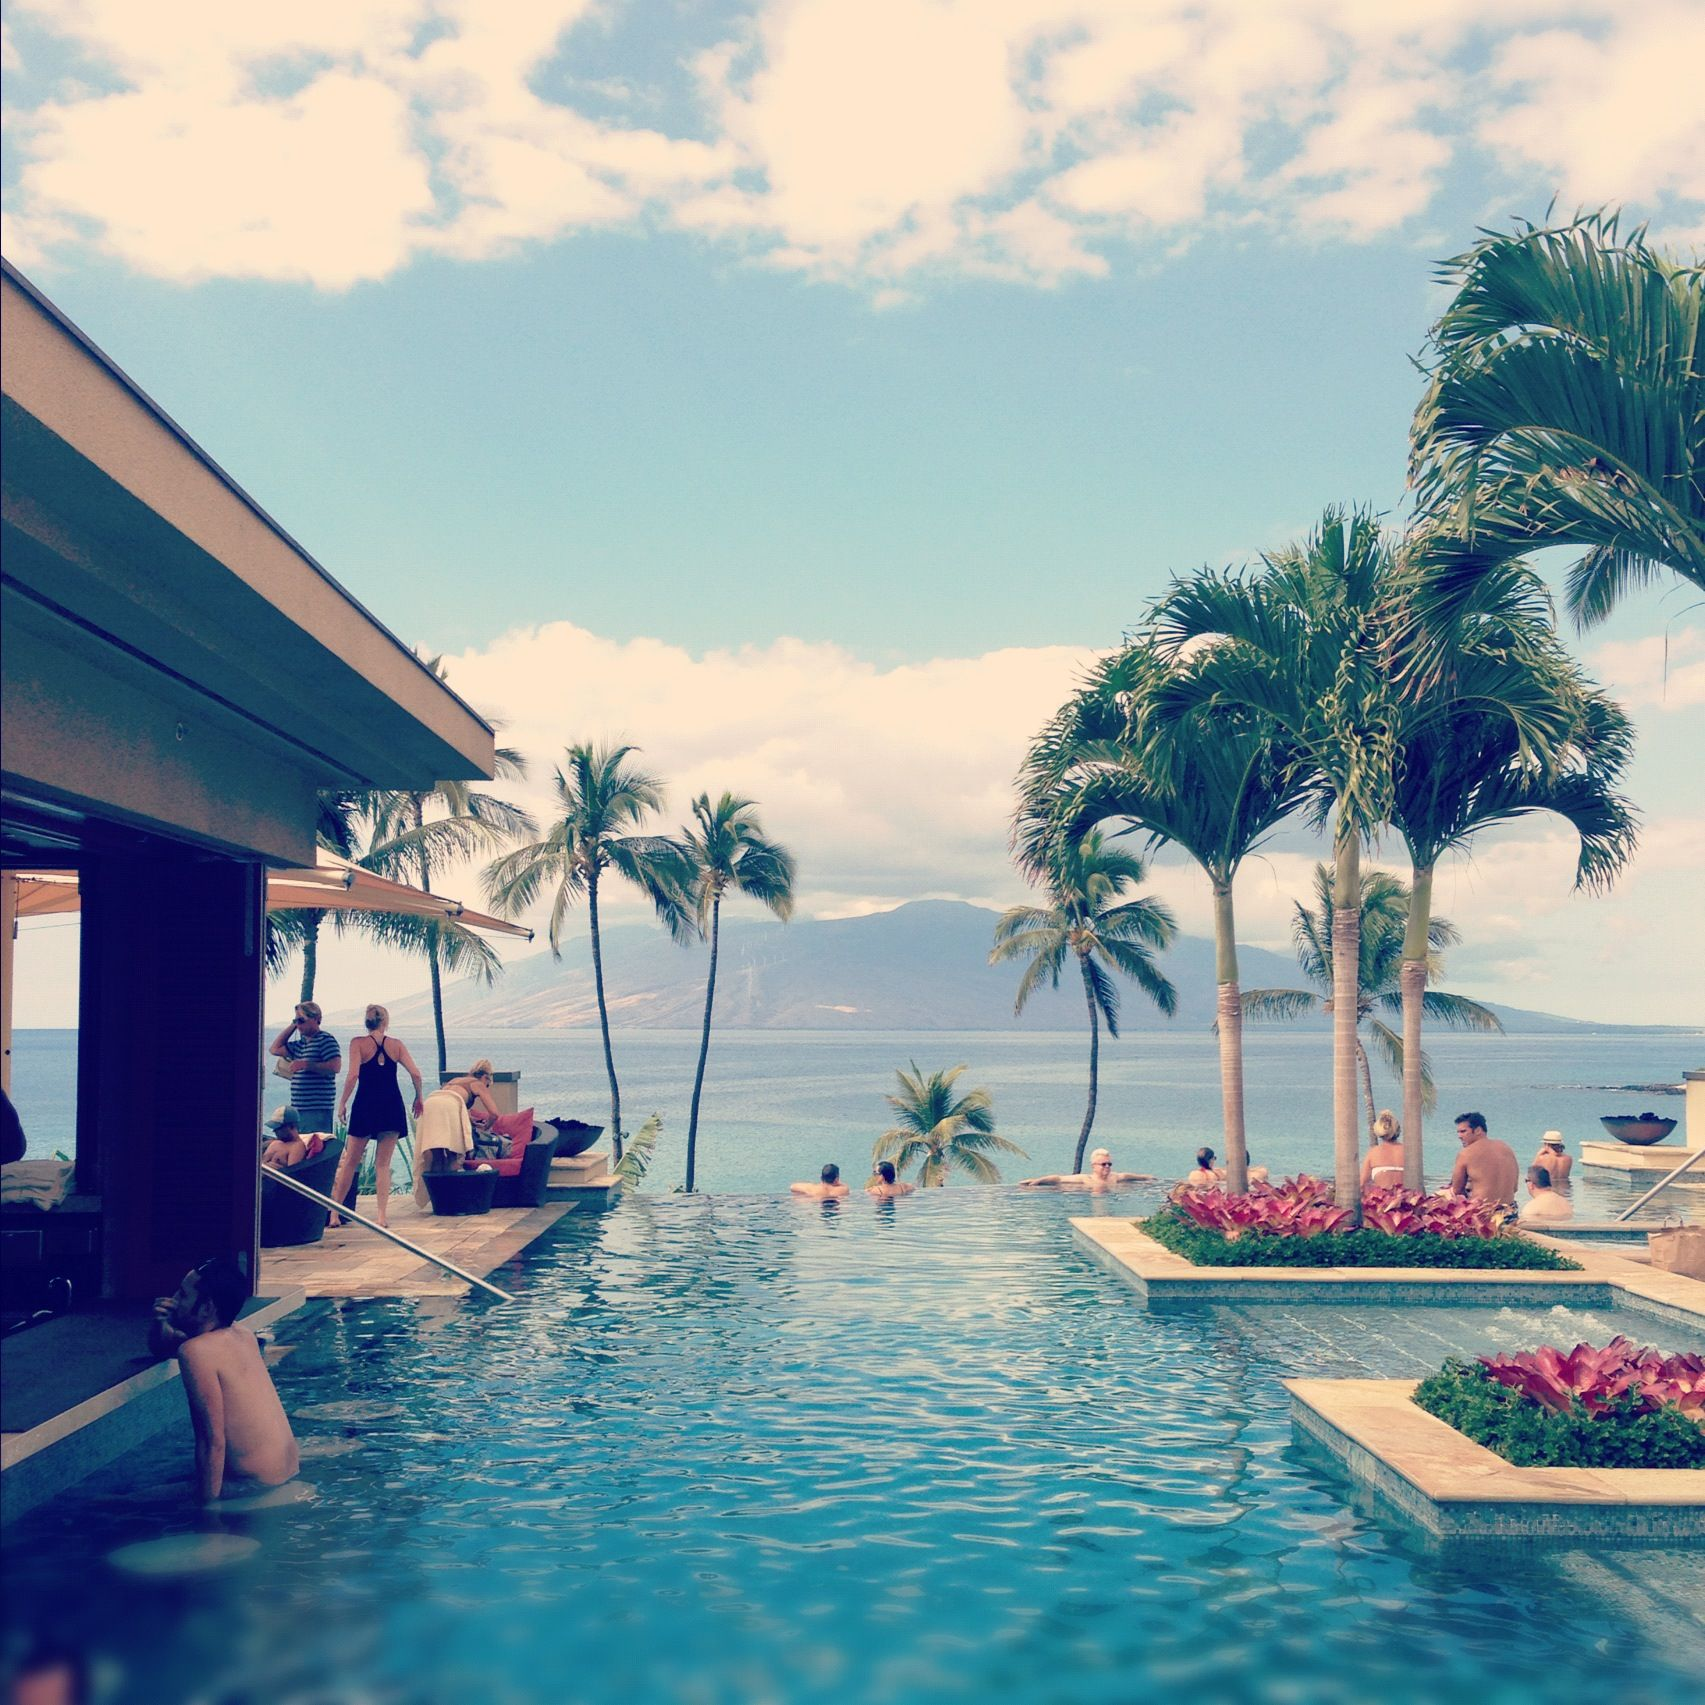 Infinity Pool At The Four Seasons Maui. Music Plays Under